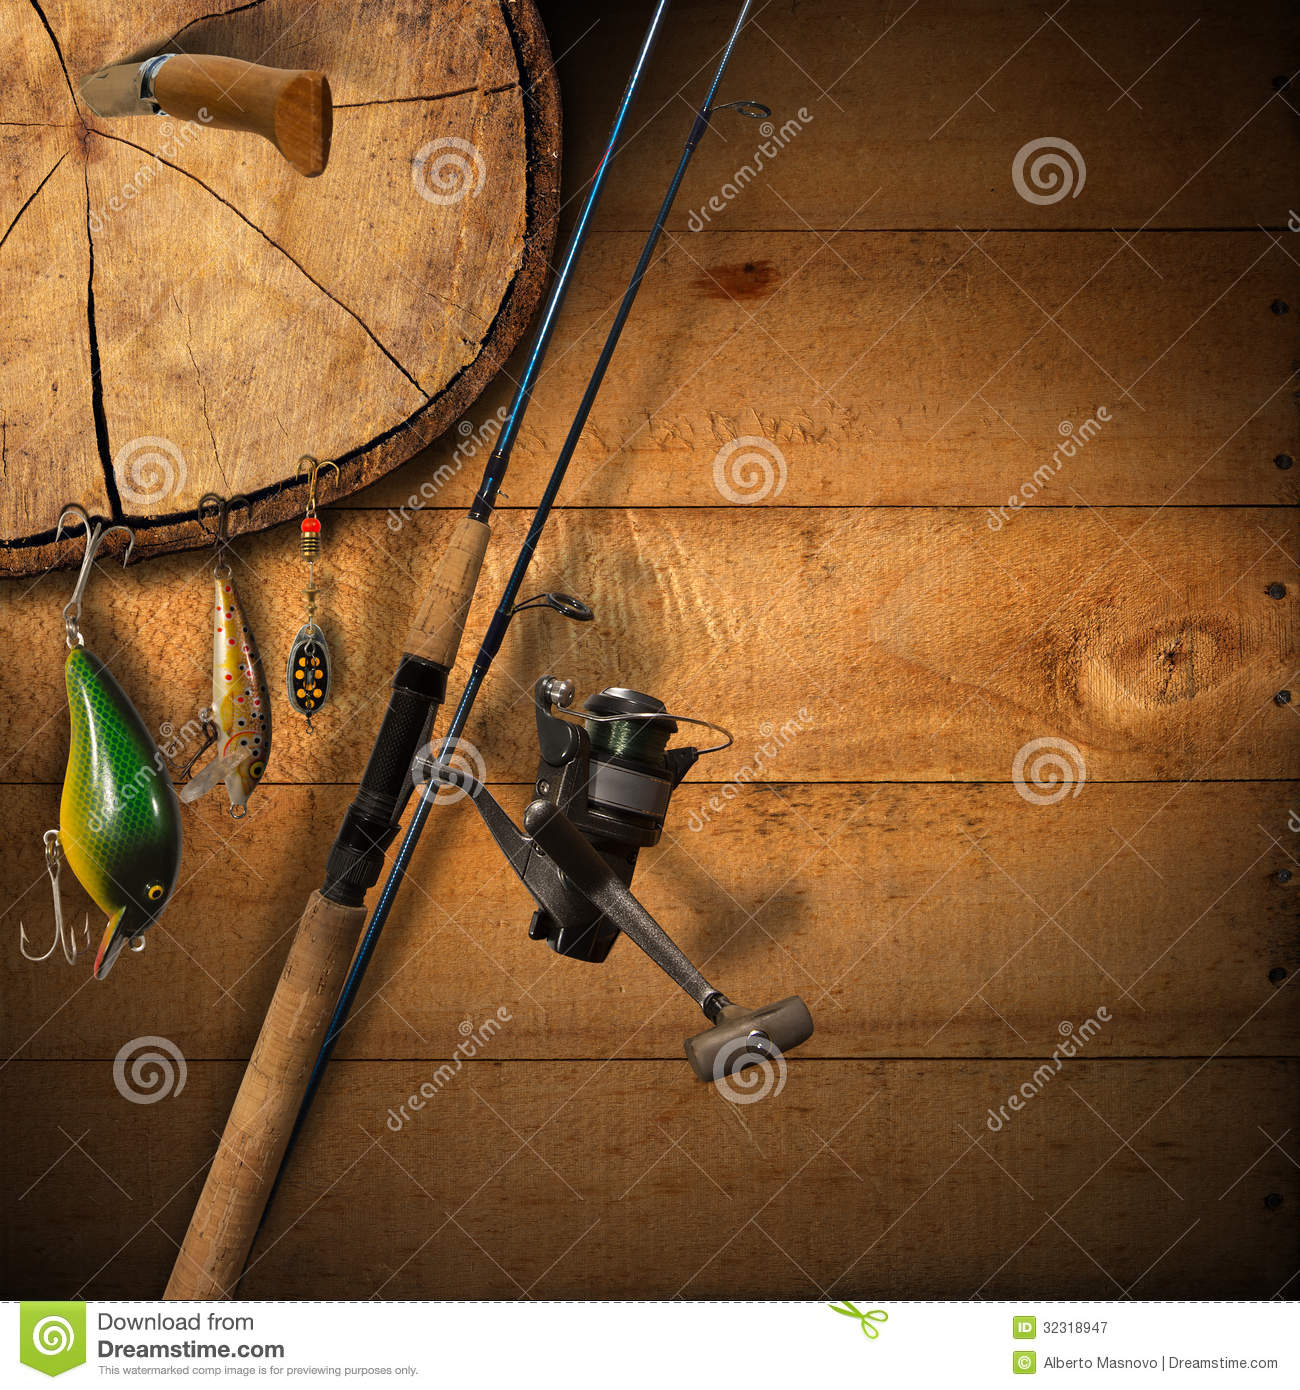 Fishing tackle background stock illustration image of for How to get free fishing gear